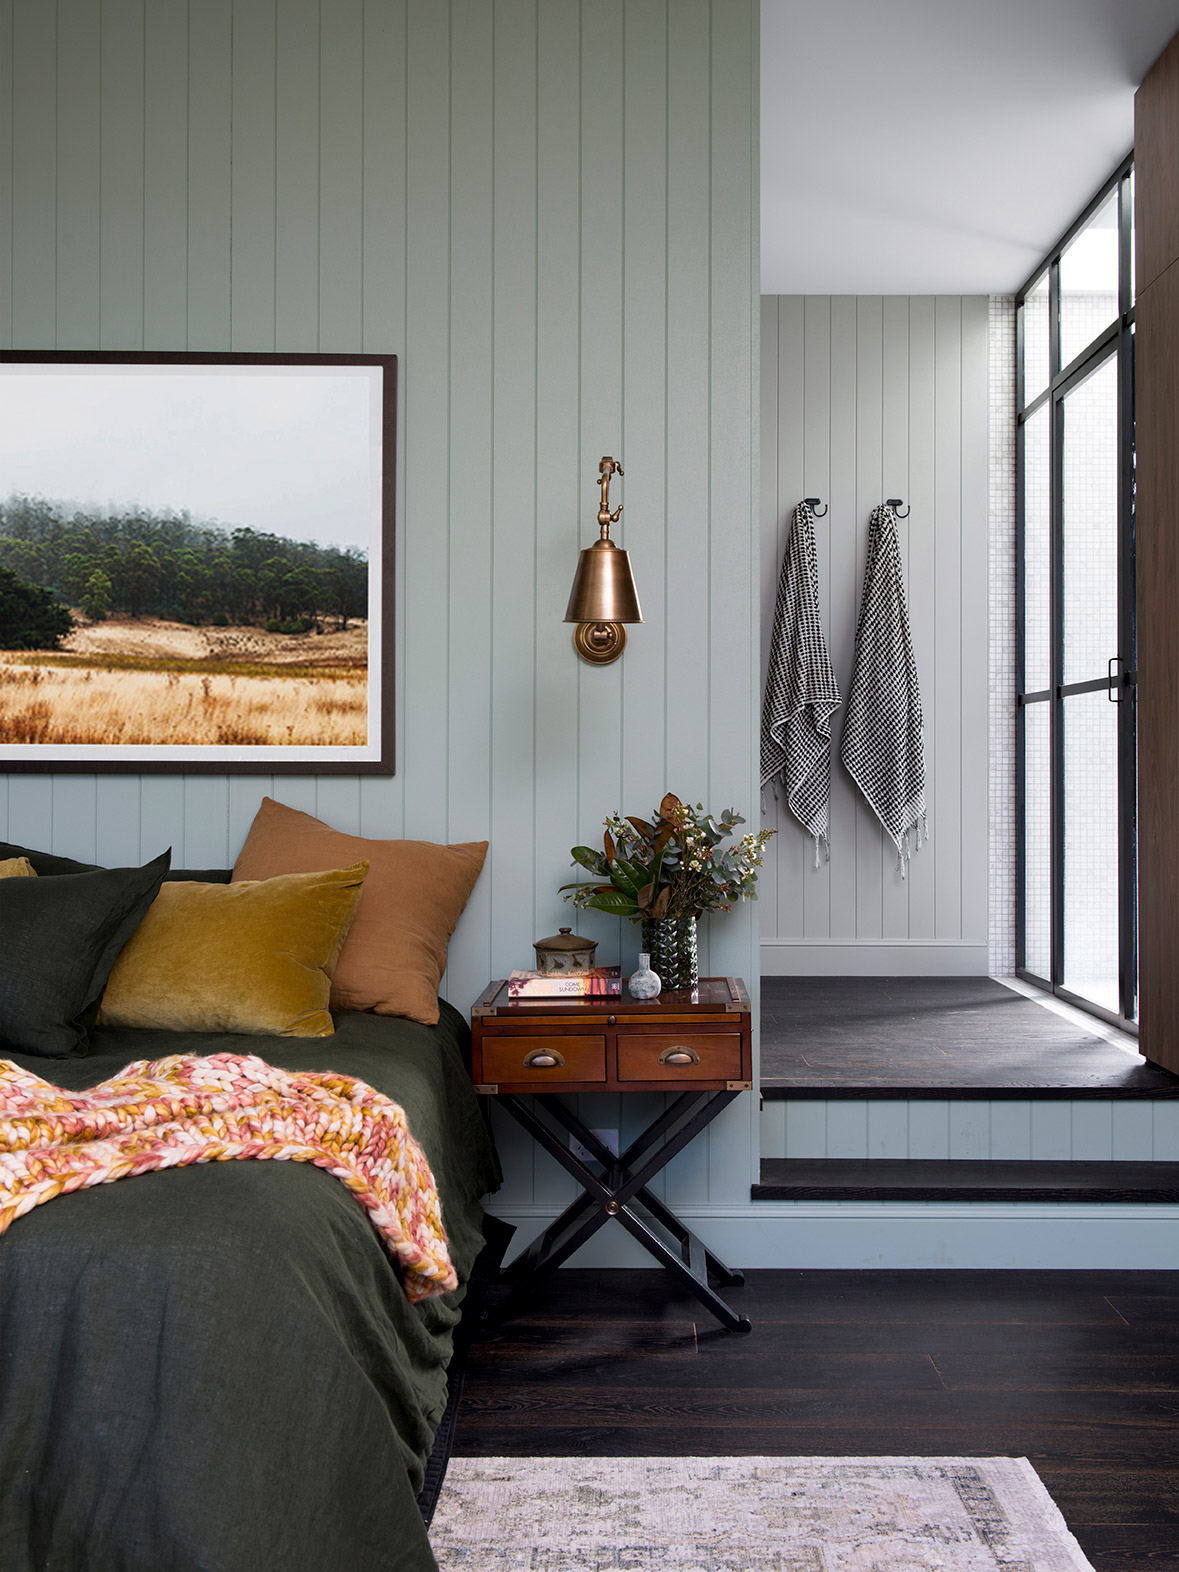 10 Interior Design Trends to Watch for 2020 - realestate ... on Trendy Bedroom  id=56645